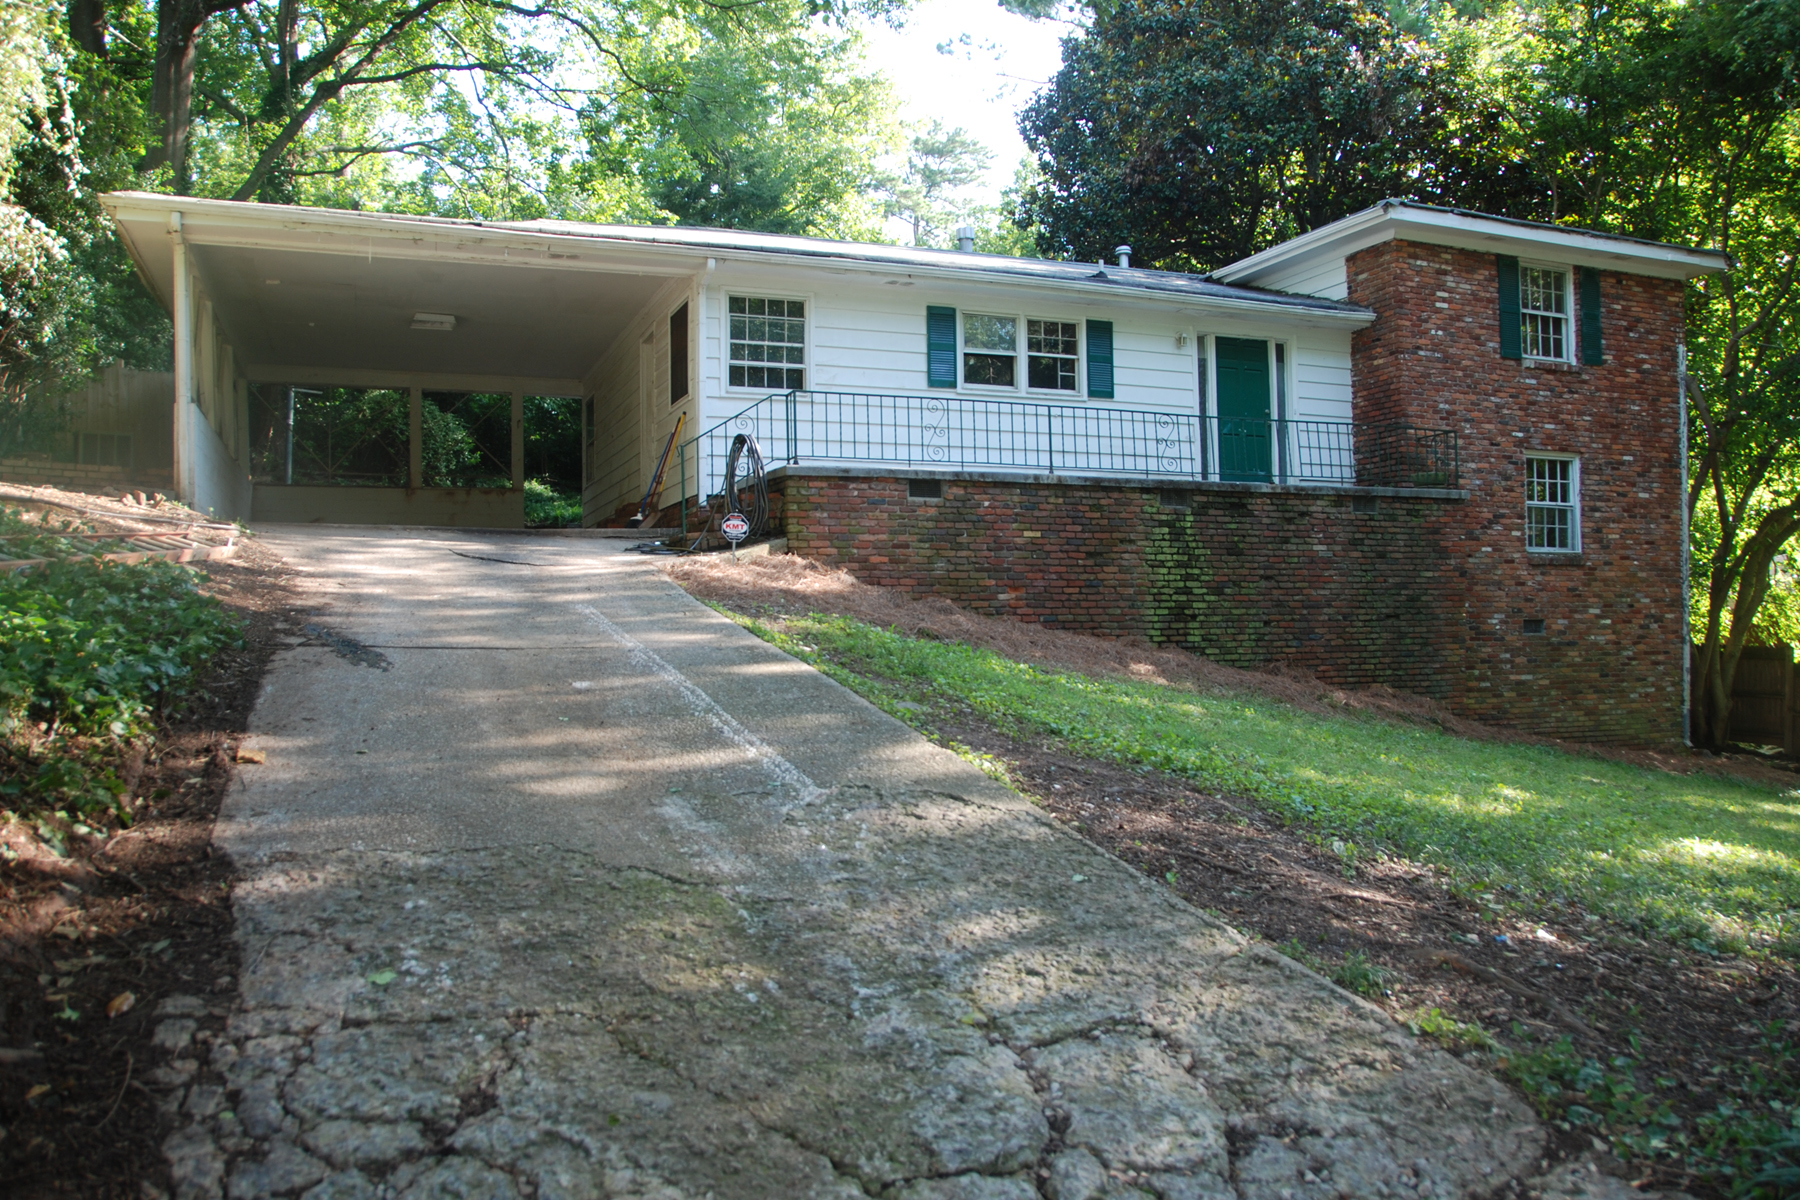 Single Family Home for Sale at Split-Level Home in Sought-After North Buckhead 348 Lakemoore Drive Atlanta, Georgia 30342 United States